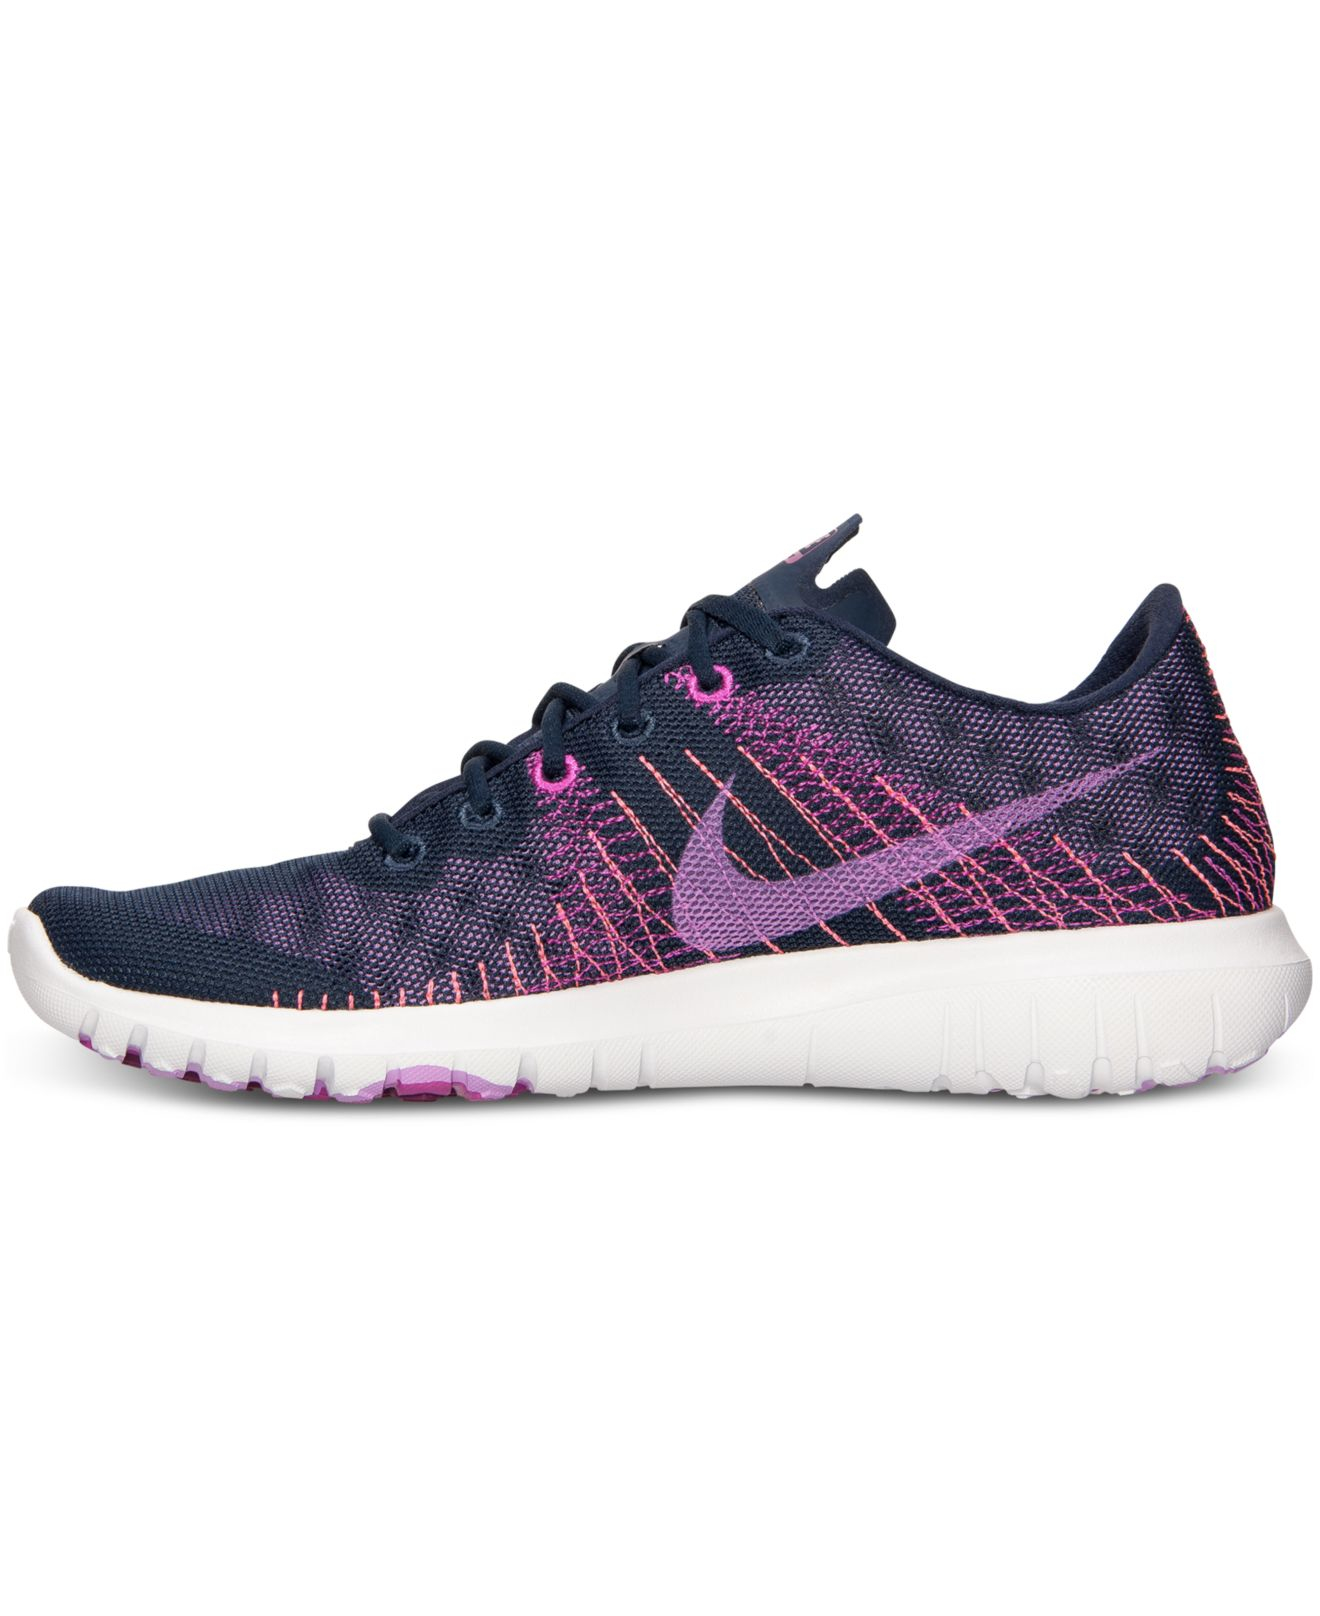 Lyst - Nike Women s Flex Fury Running Sneakers From Finish Line in ... 653fd5a385